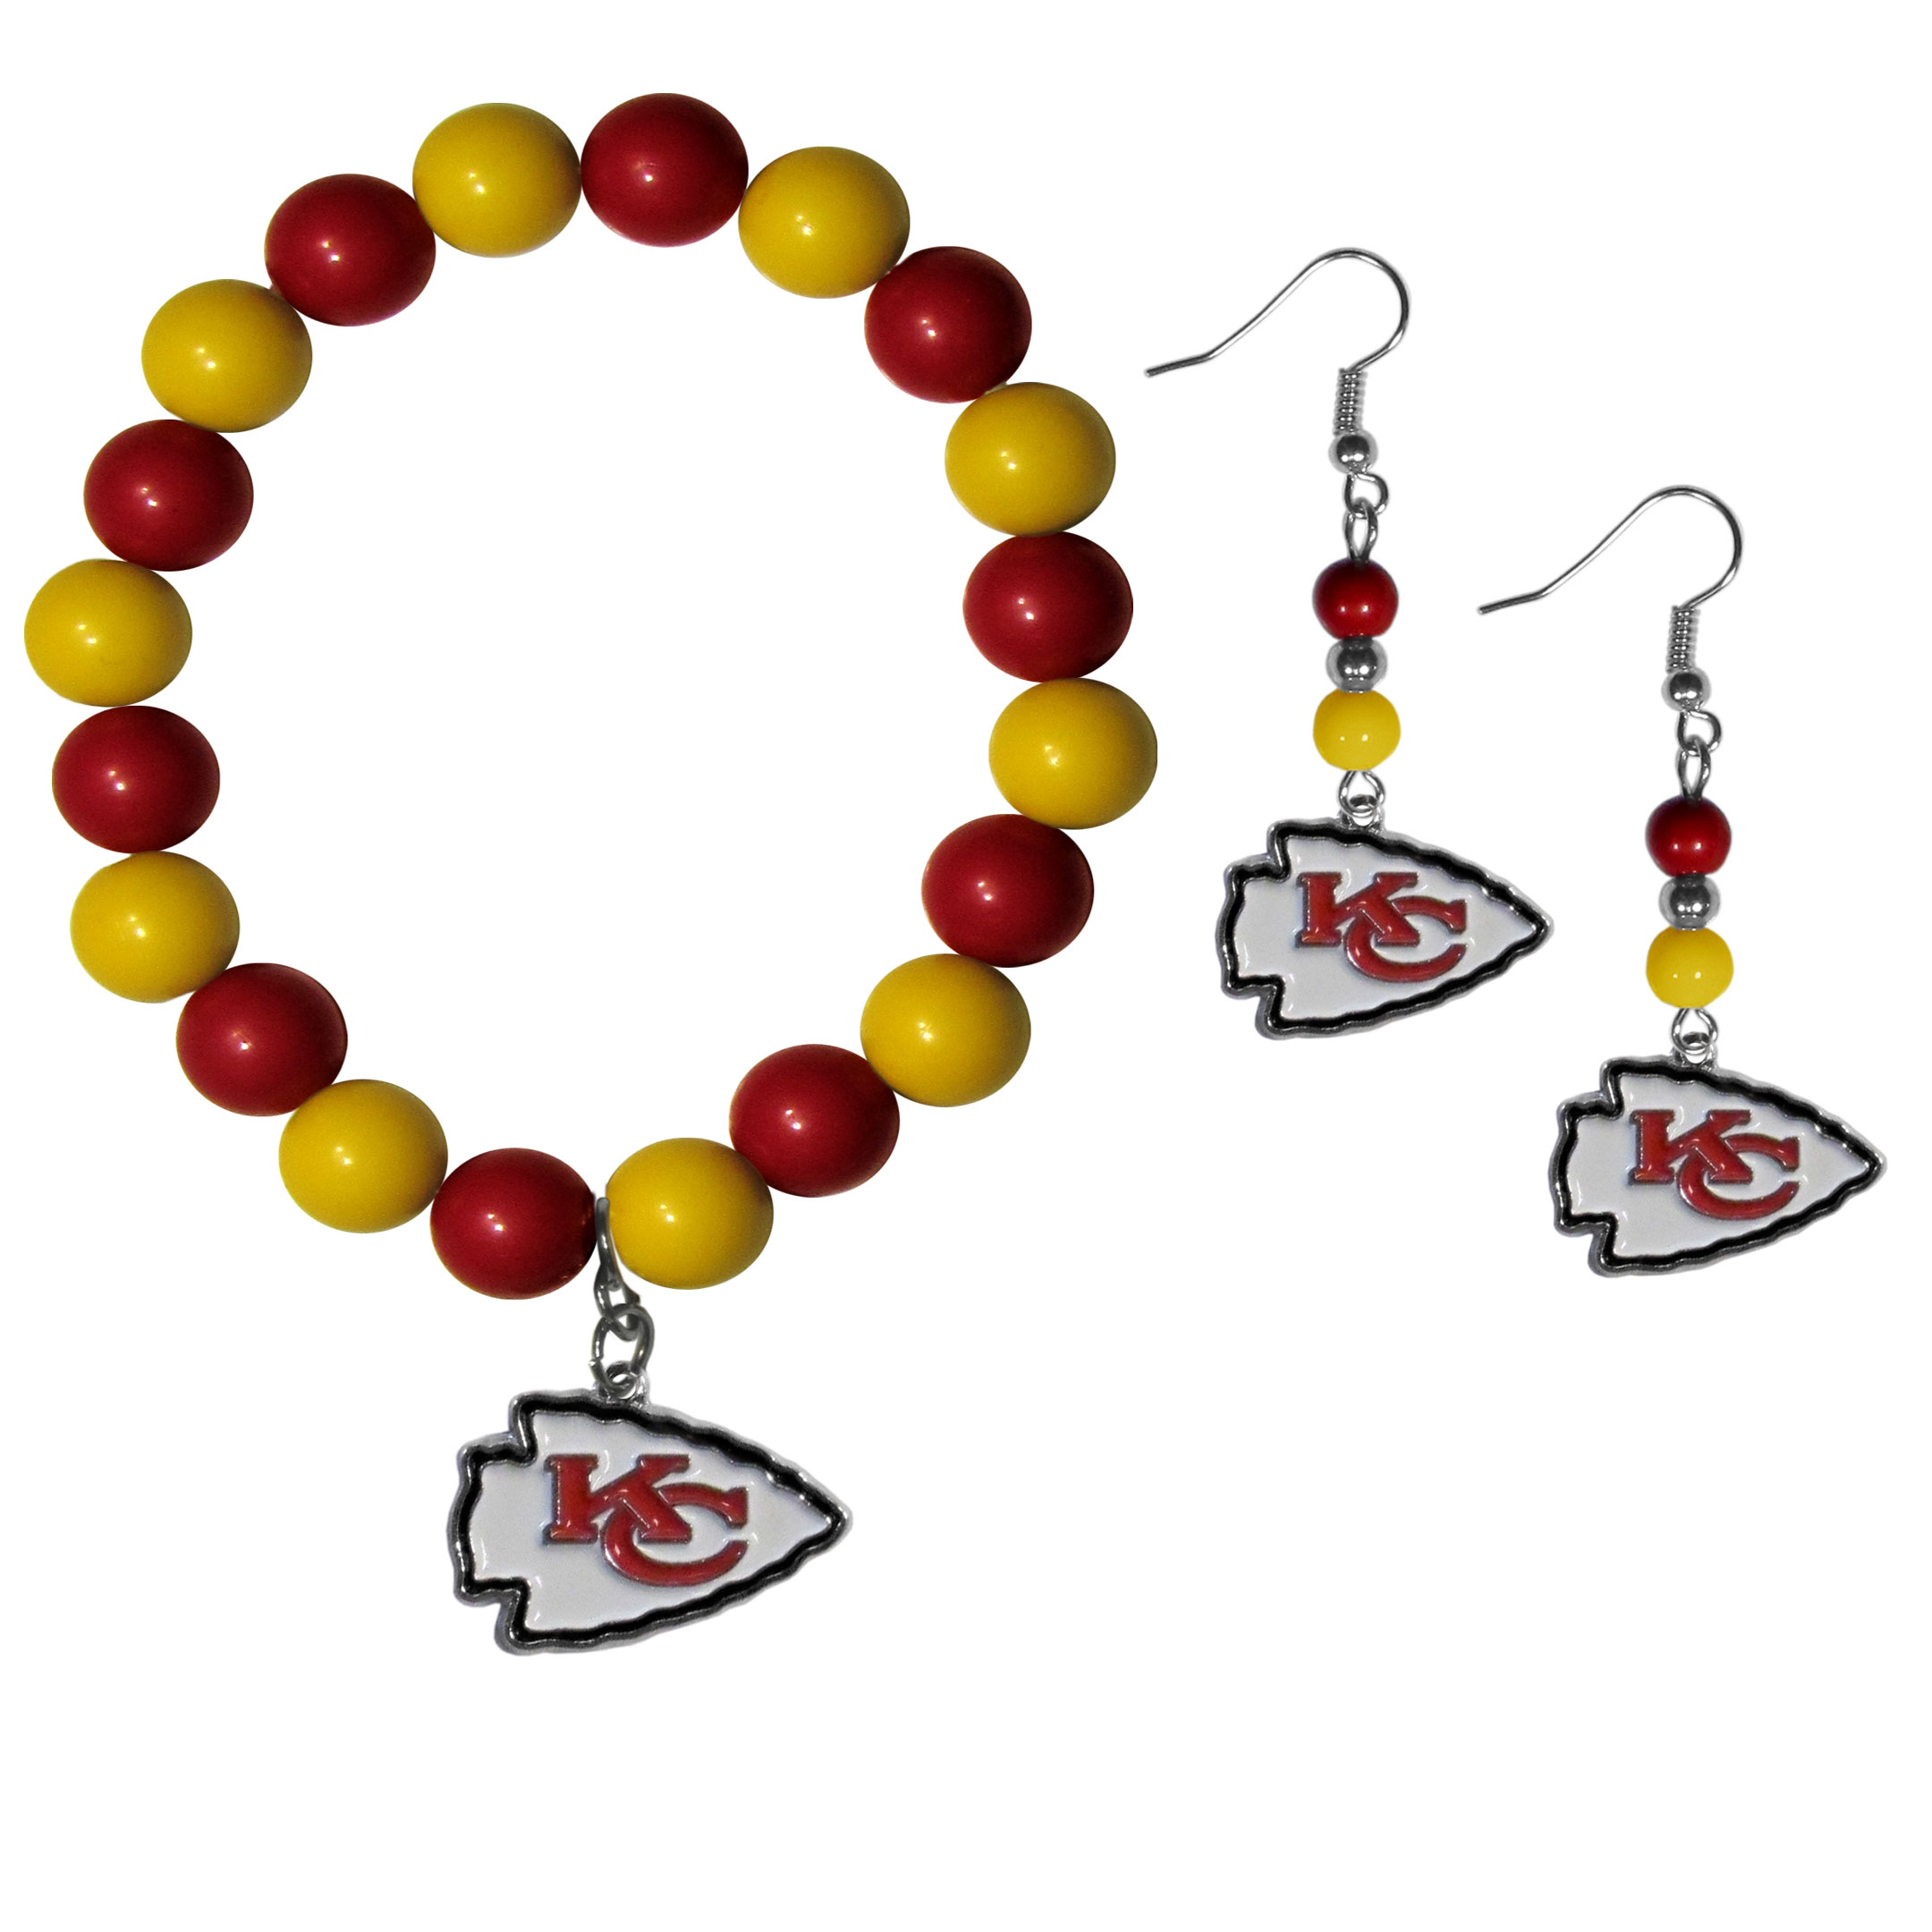 Kansas City Chiefs Fan Bead Earrings and Bracelet Set - This fun and colorful Kansas City Chiefs fan bead jewelry set is fun and casual with eye-catching beads in bright team colors. The fashionable dangle earrings feature a team colored beads that drop down to a carved and enameled charm. The stretch bracelet has larger matching beads that make a striking statement and have a matching team charm. These sassy yet sporty jewelry pieces make a perfect gift for any female fan. Spice up your game-day outfit with these fun colorful earrings and bracelet that are also cute enough for any day.